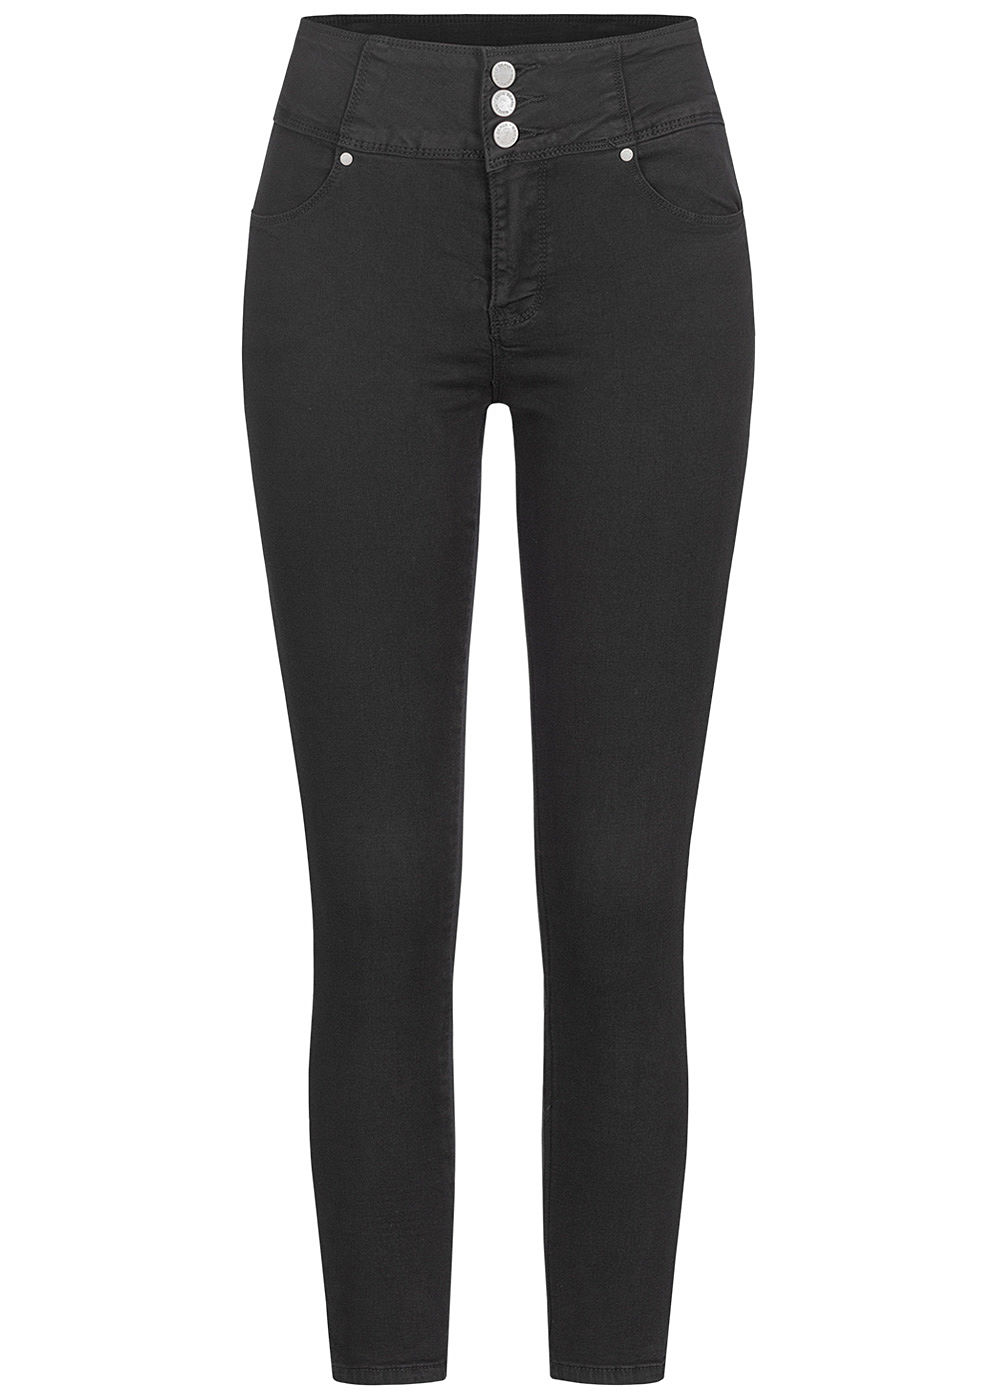 Seventyseven Lifestyle Damen High-Waist Skinny Jeans 4-Pockets schwarz denim - Art.-Nr.: 19099056-XS-BK